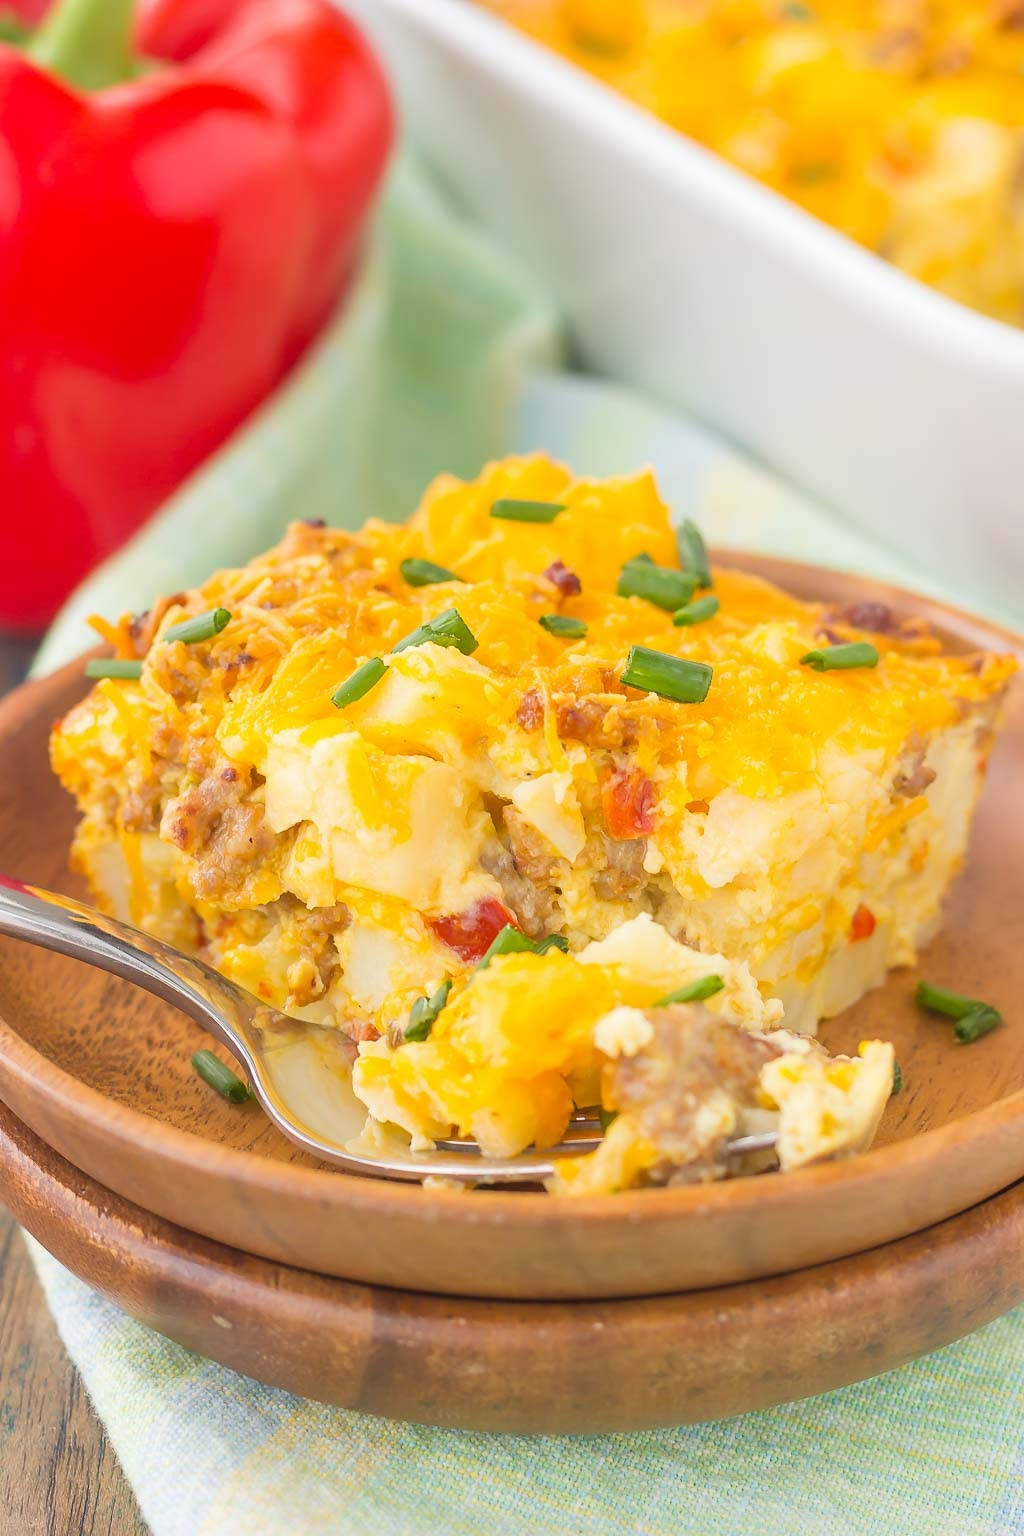 Best Sausage Hash Brown Breakfast Casserole Recipe | Breakfast Recipes Healthy, Breakfast Recipes Easy, Breakfast Recipes Make Ahead, Breakfast Recipes Baked, Breakfast Recipes For A Crowd, Breakfast Recipes With Eggs, Breakfast Recipes Casserole, Breakfast Recipes Kids #breakfast #casserole #hashbrown #easybreakfast #healthybreakfast